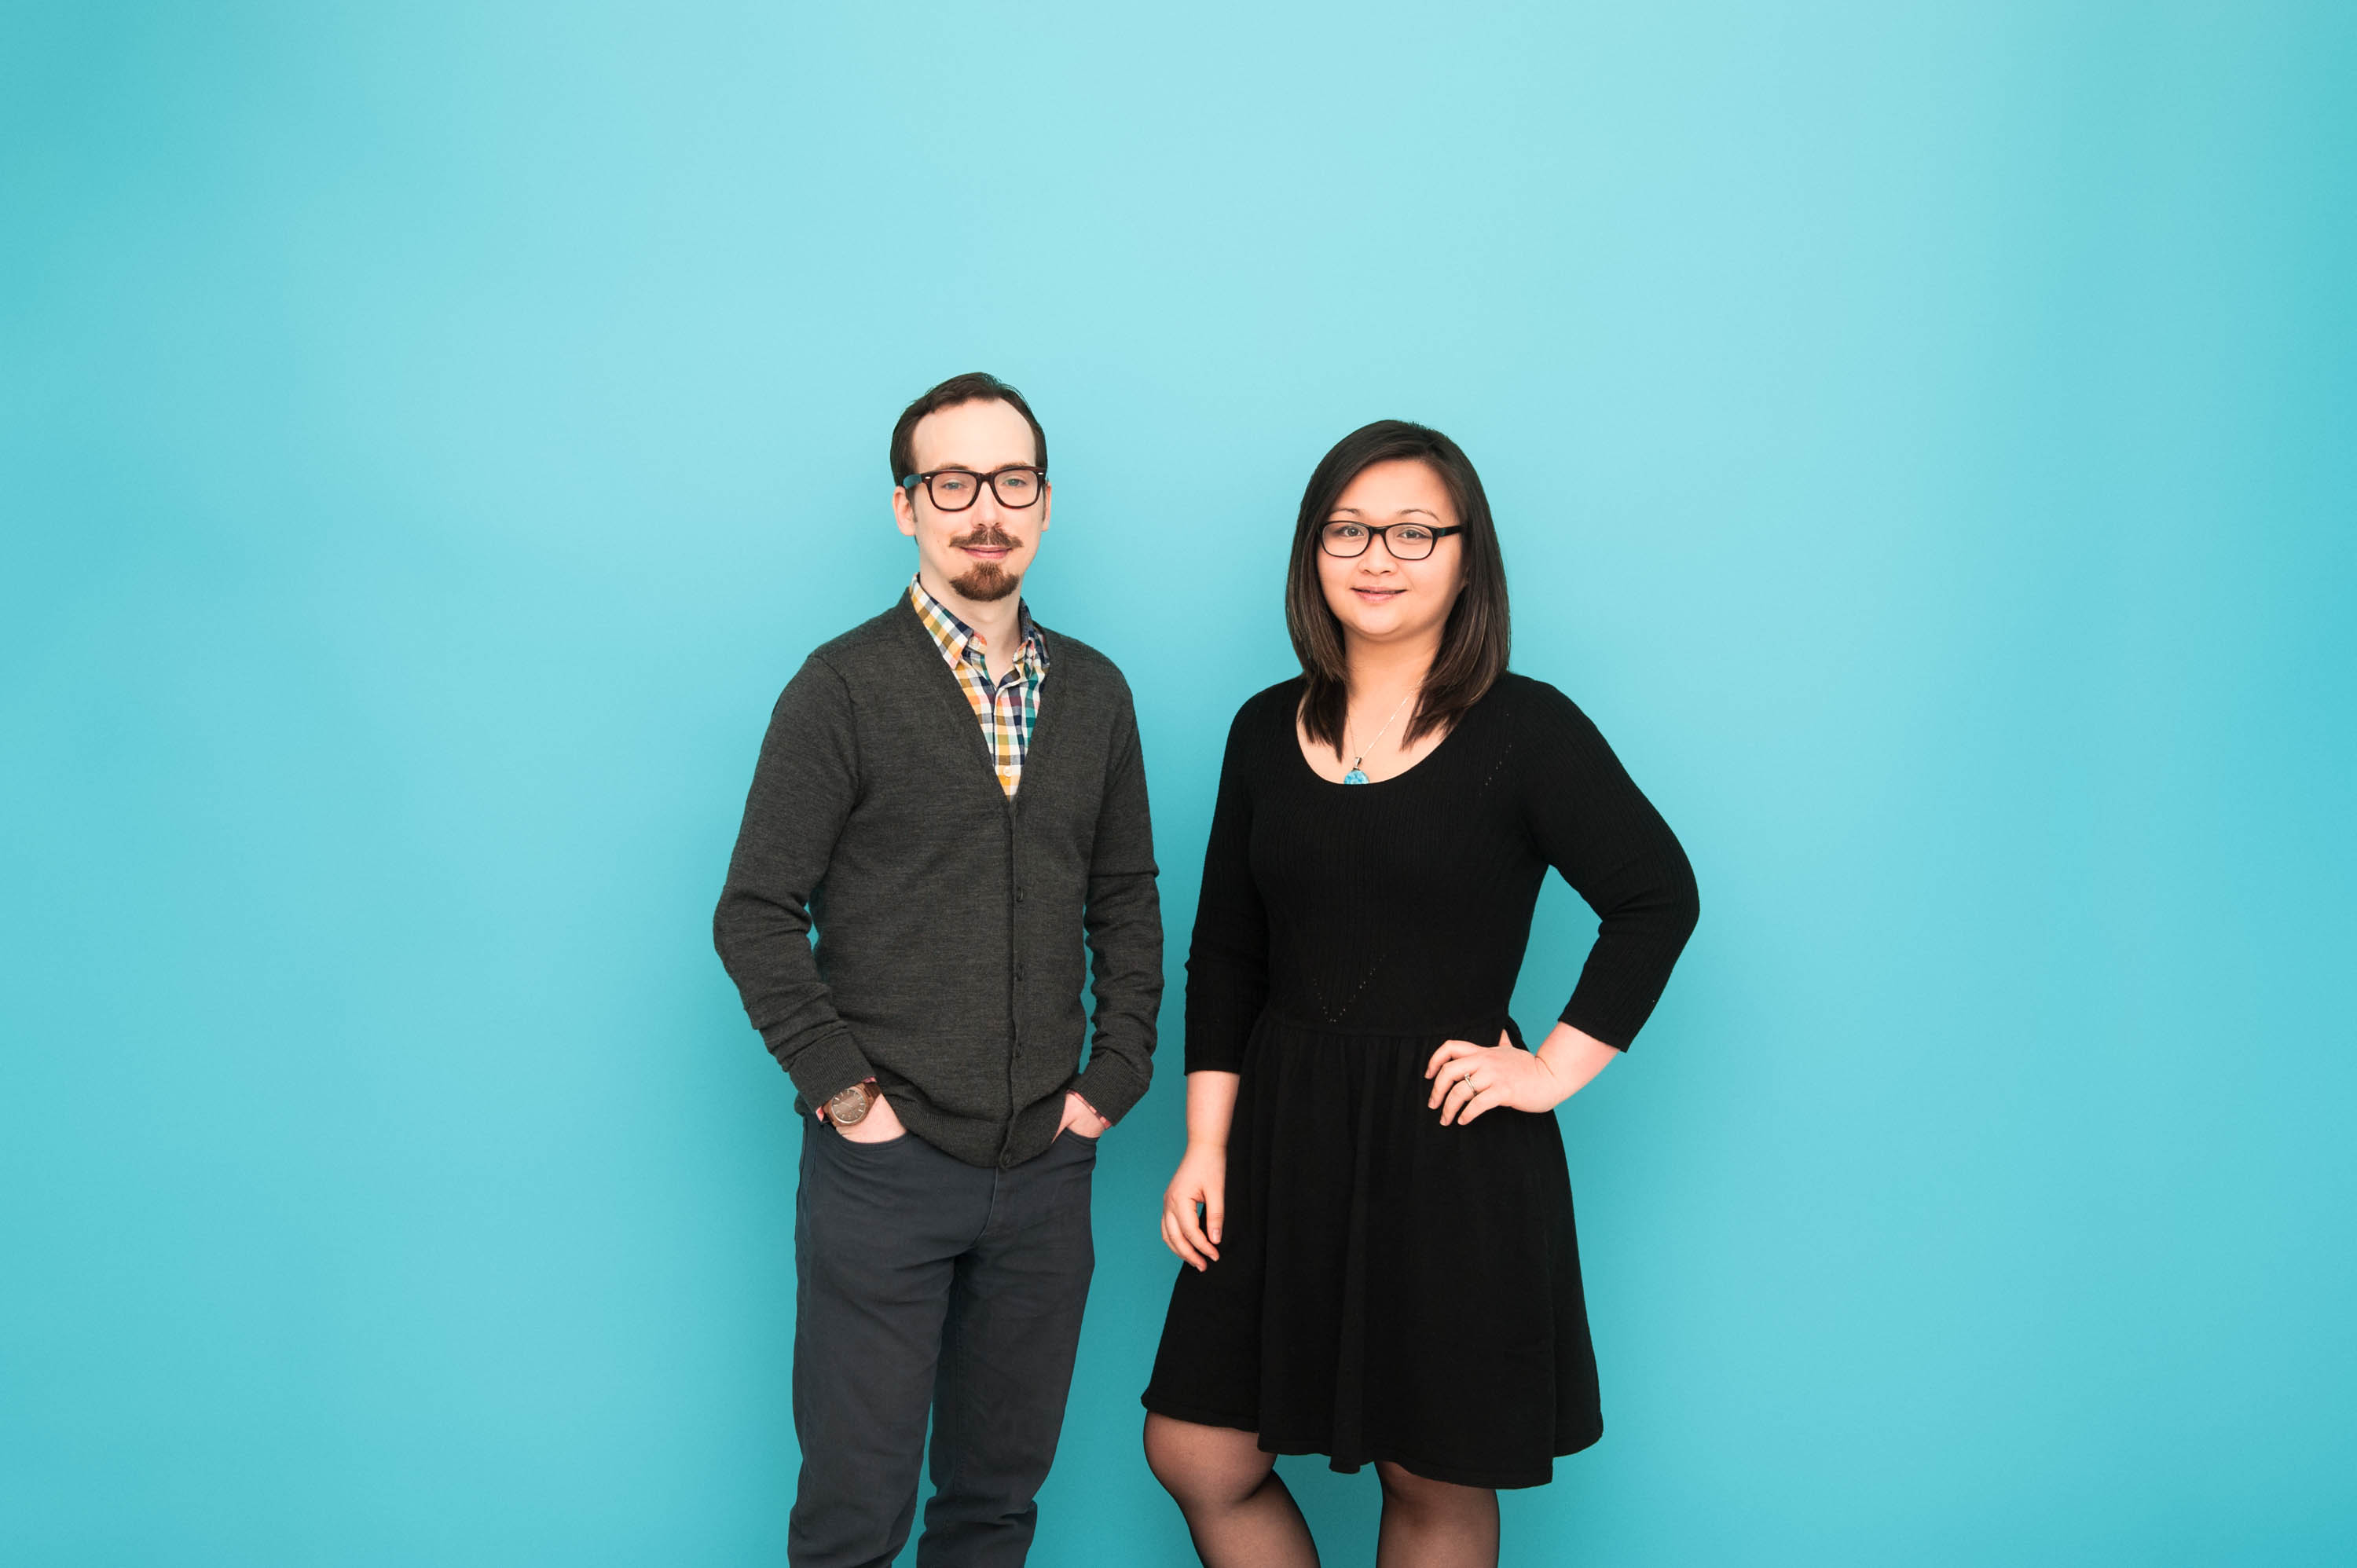 Pascal and Elaine, Founders at The Good Kind